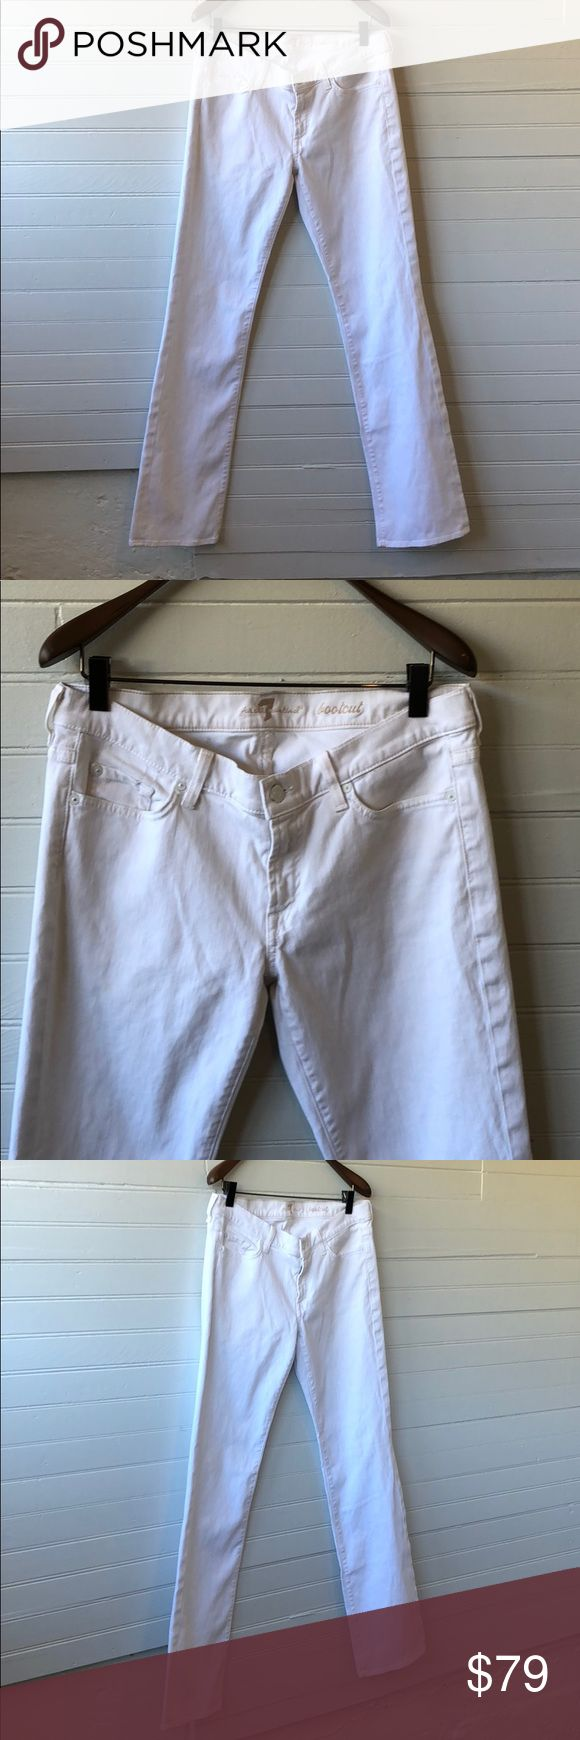 7 for all mankind white bootcut jean Excellent used condition wait to cut jean 7 for all mankind no stains no rips stretch denim material very comfortable 7 For All Mankind Jeans Boot Cut